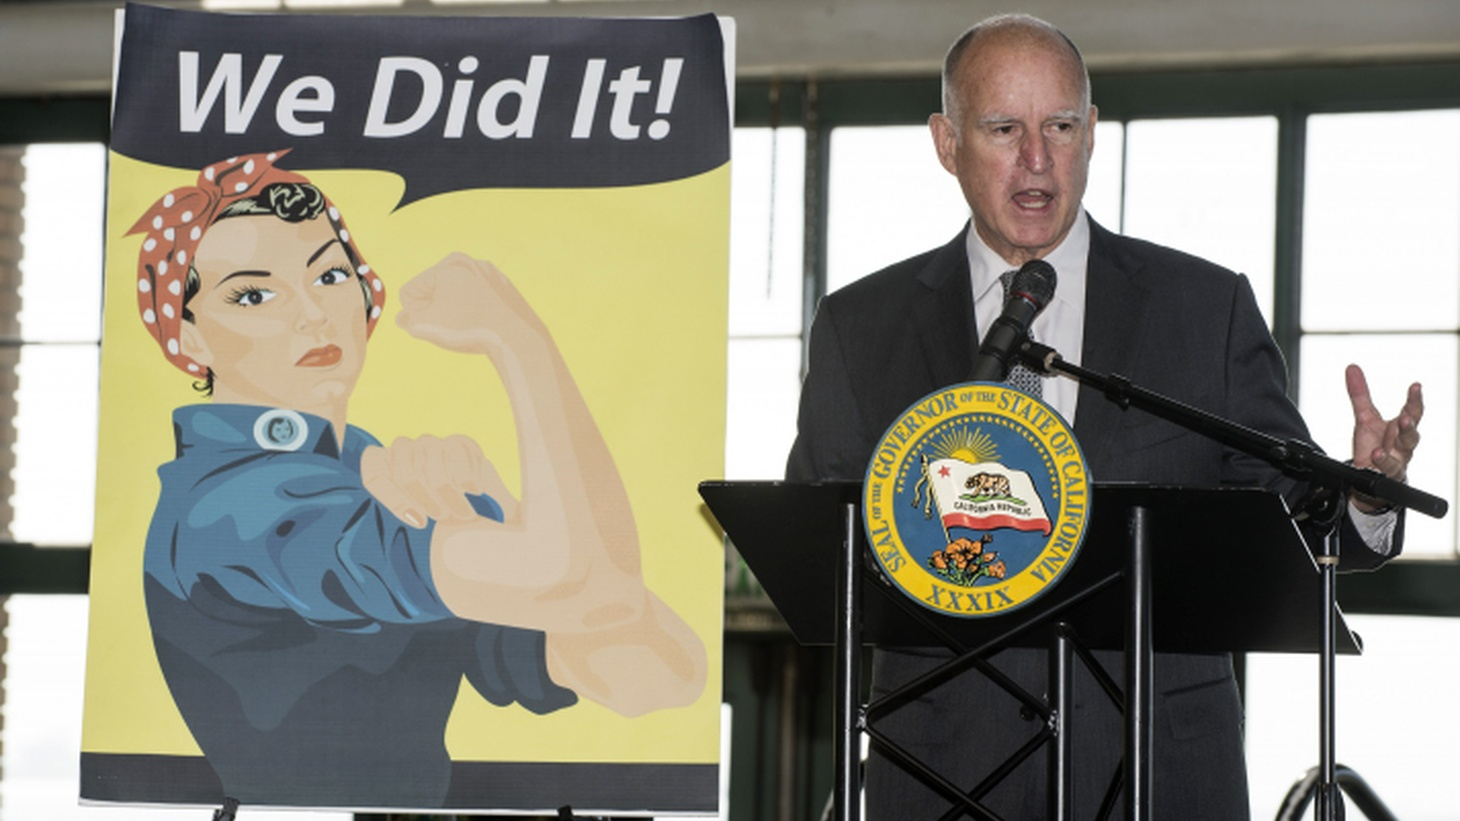 California has enacted the toughest equal pay law in the nation. It's designed to eliminate the gap of 23 cents an hour between men and women who perform the same tasks in the workplace. Is it a model for other states, or a recipe for trouble because it addresses a problem that doesn't really exist?